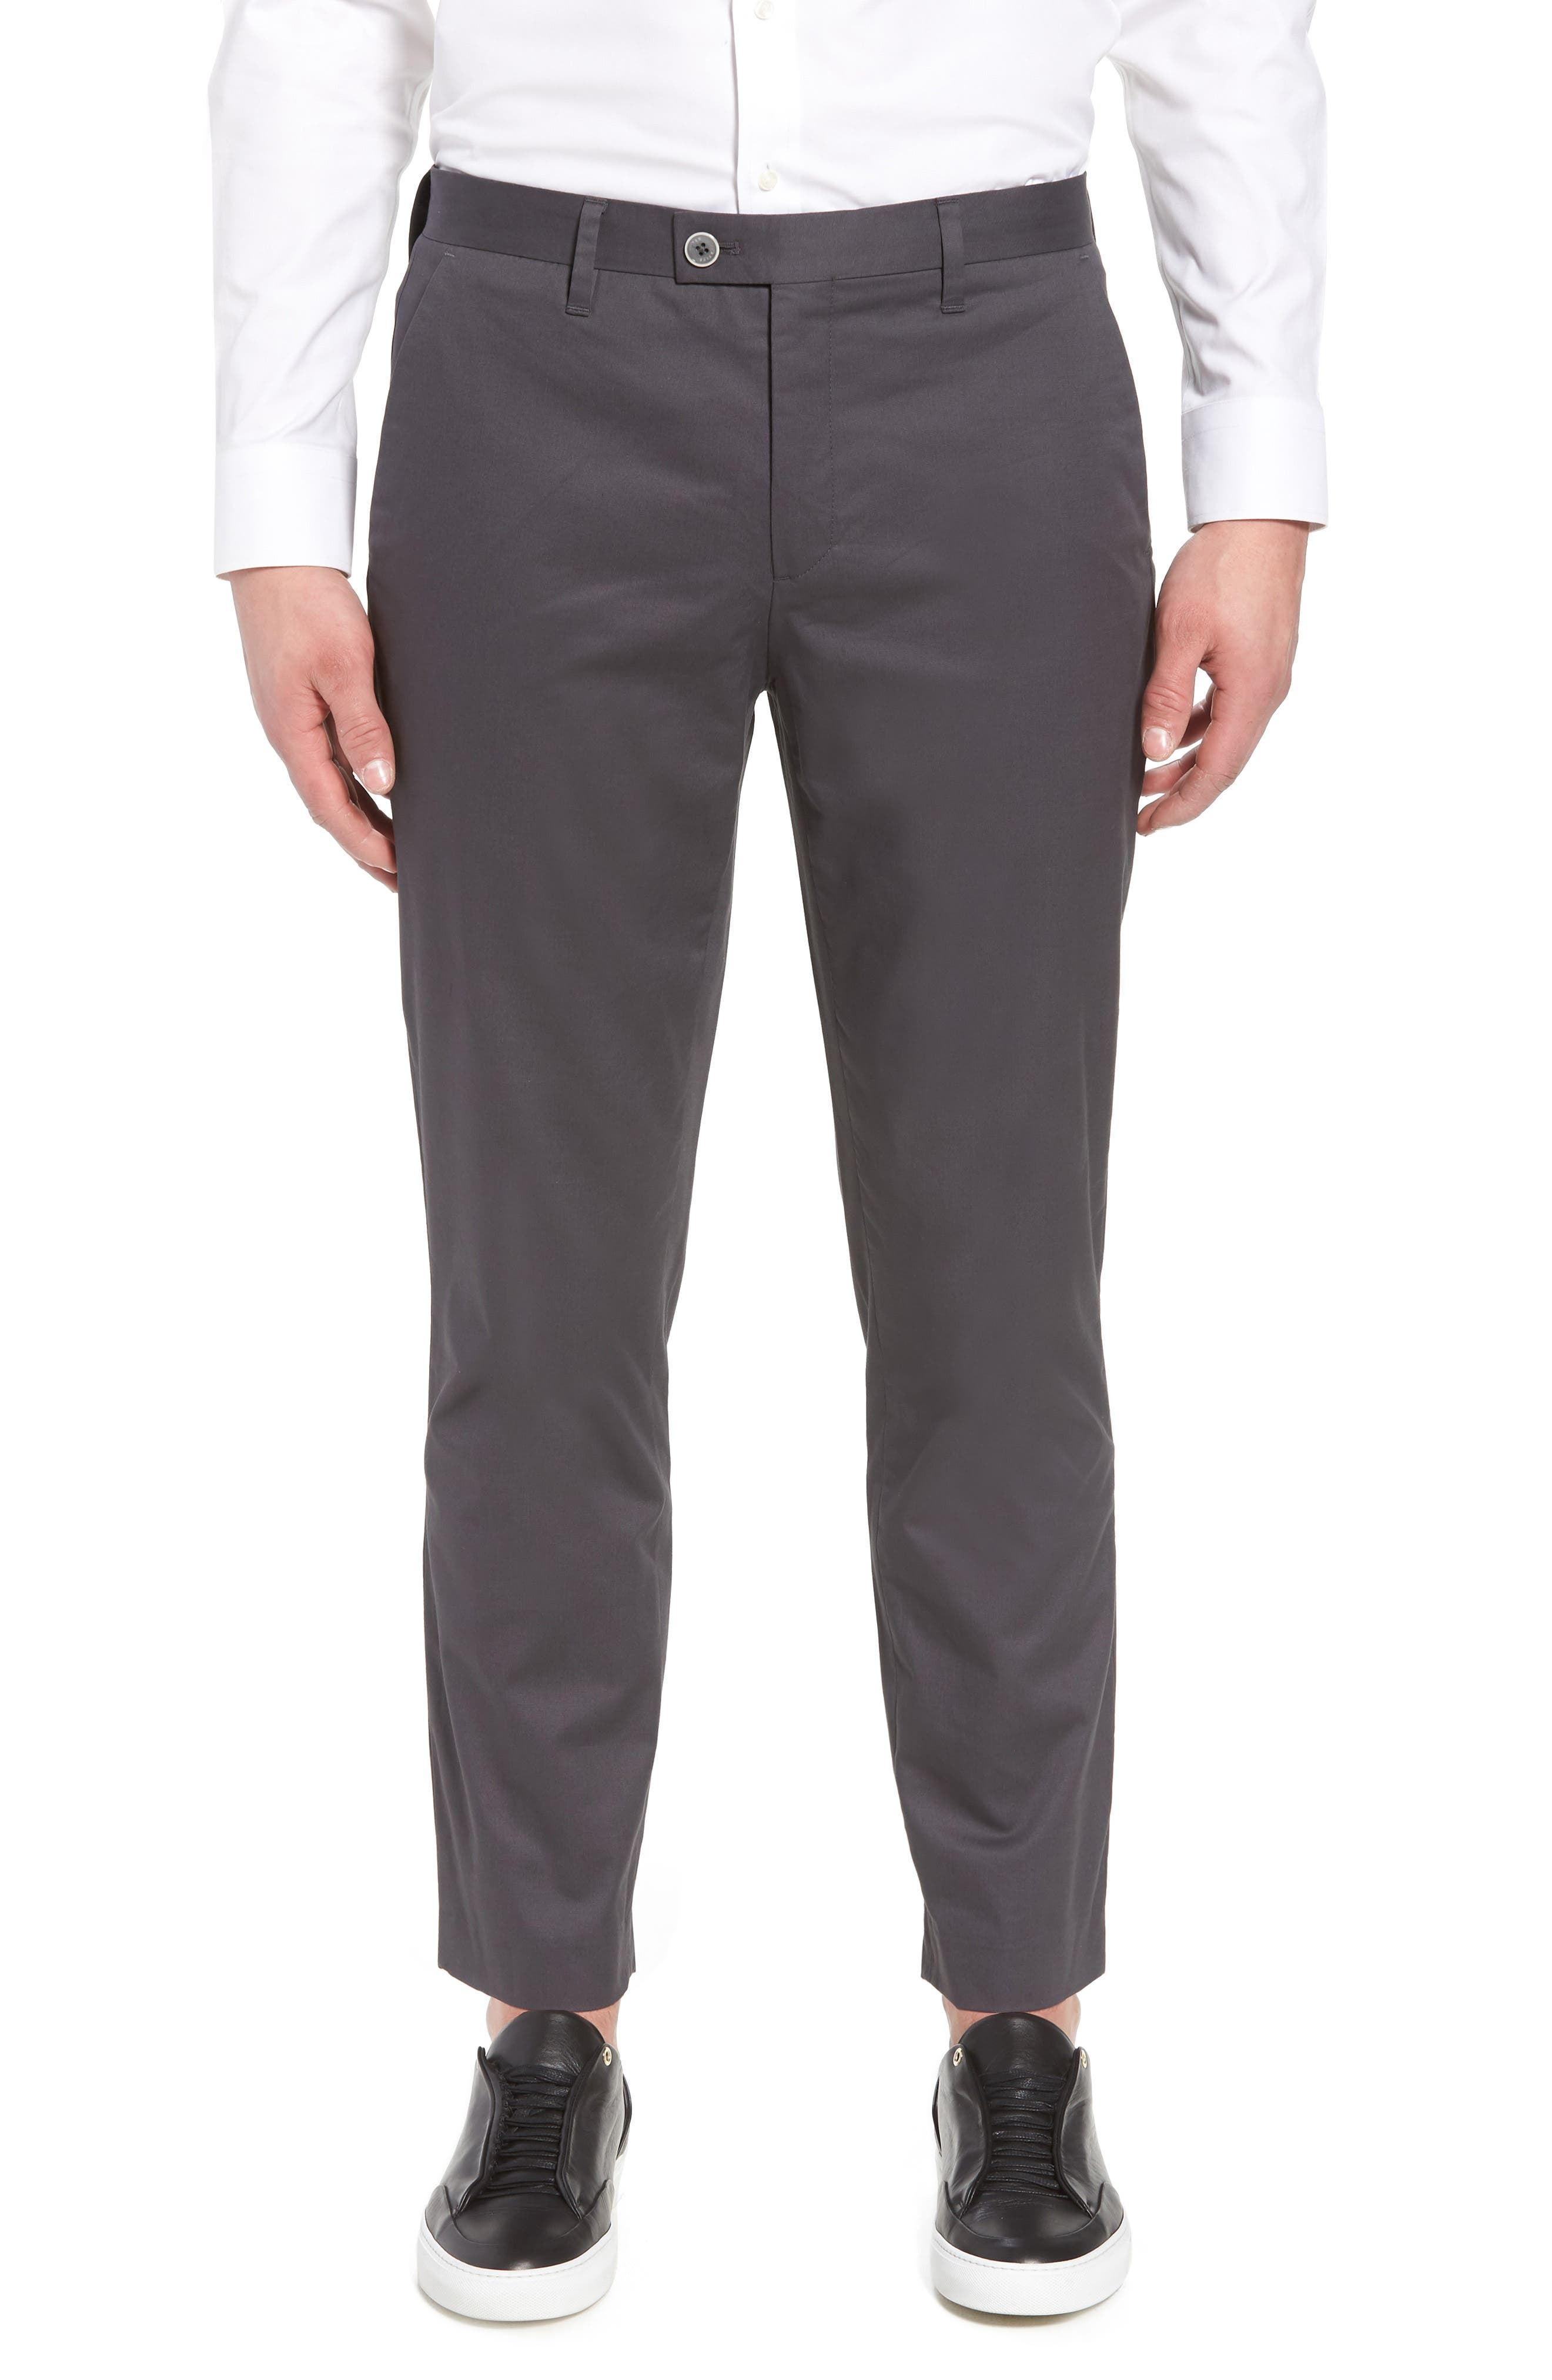 Cliftro Flat Front Stretch Cotton Pants,                         Main,                         color, Light Grey